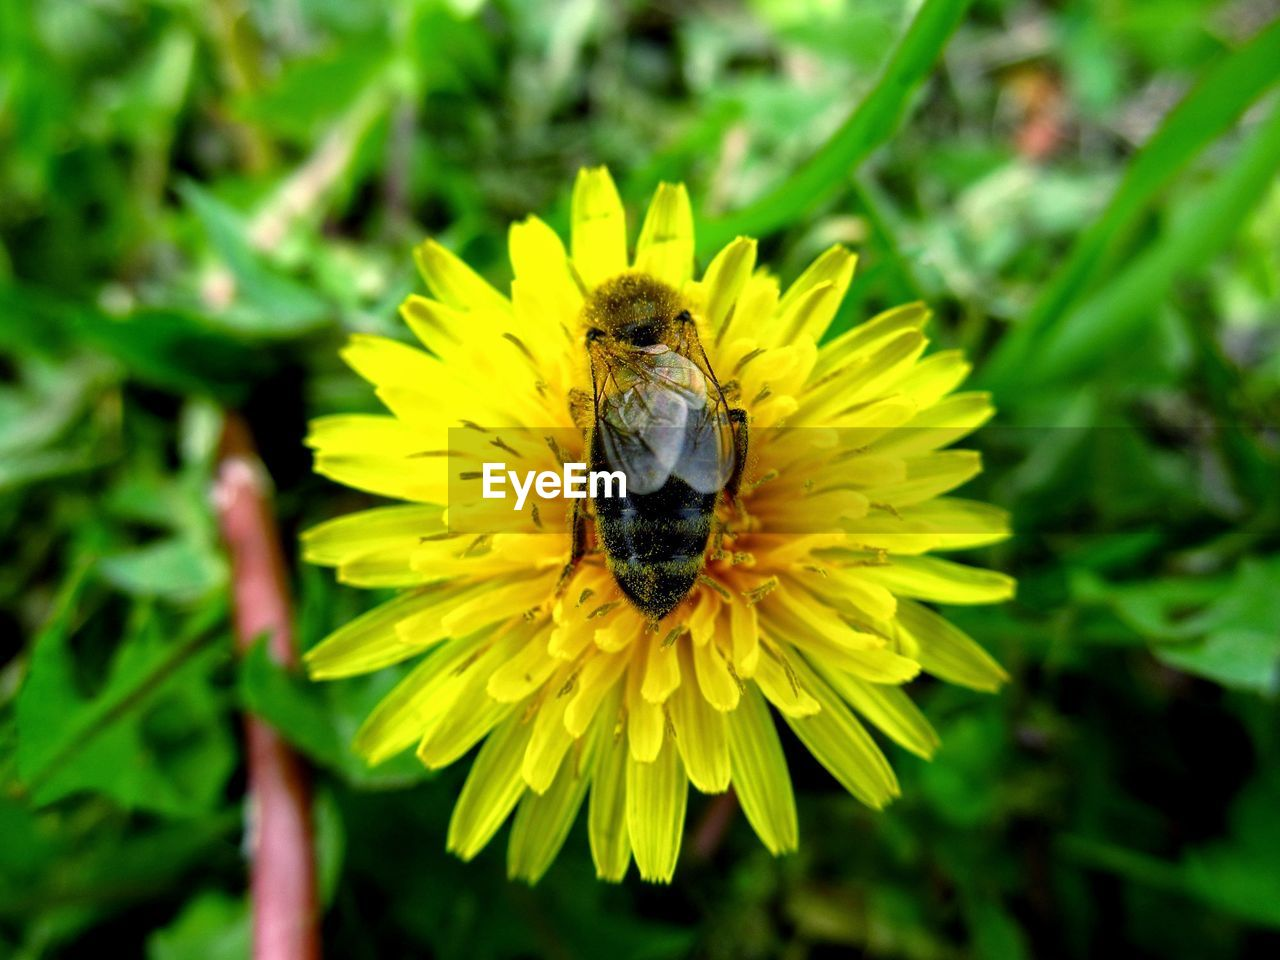 flower, insect, yellow, animal themes, animals in the wild, one animal, nature, petal, growth, beauty in nature, outdoors, fragility, plant, freshness, day, bee, green color, close-up, no people, animal wildlife, flower head, focus on foreground, pollination, leaf